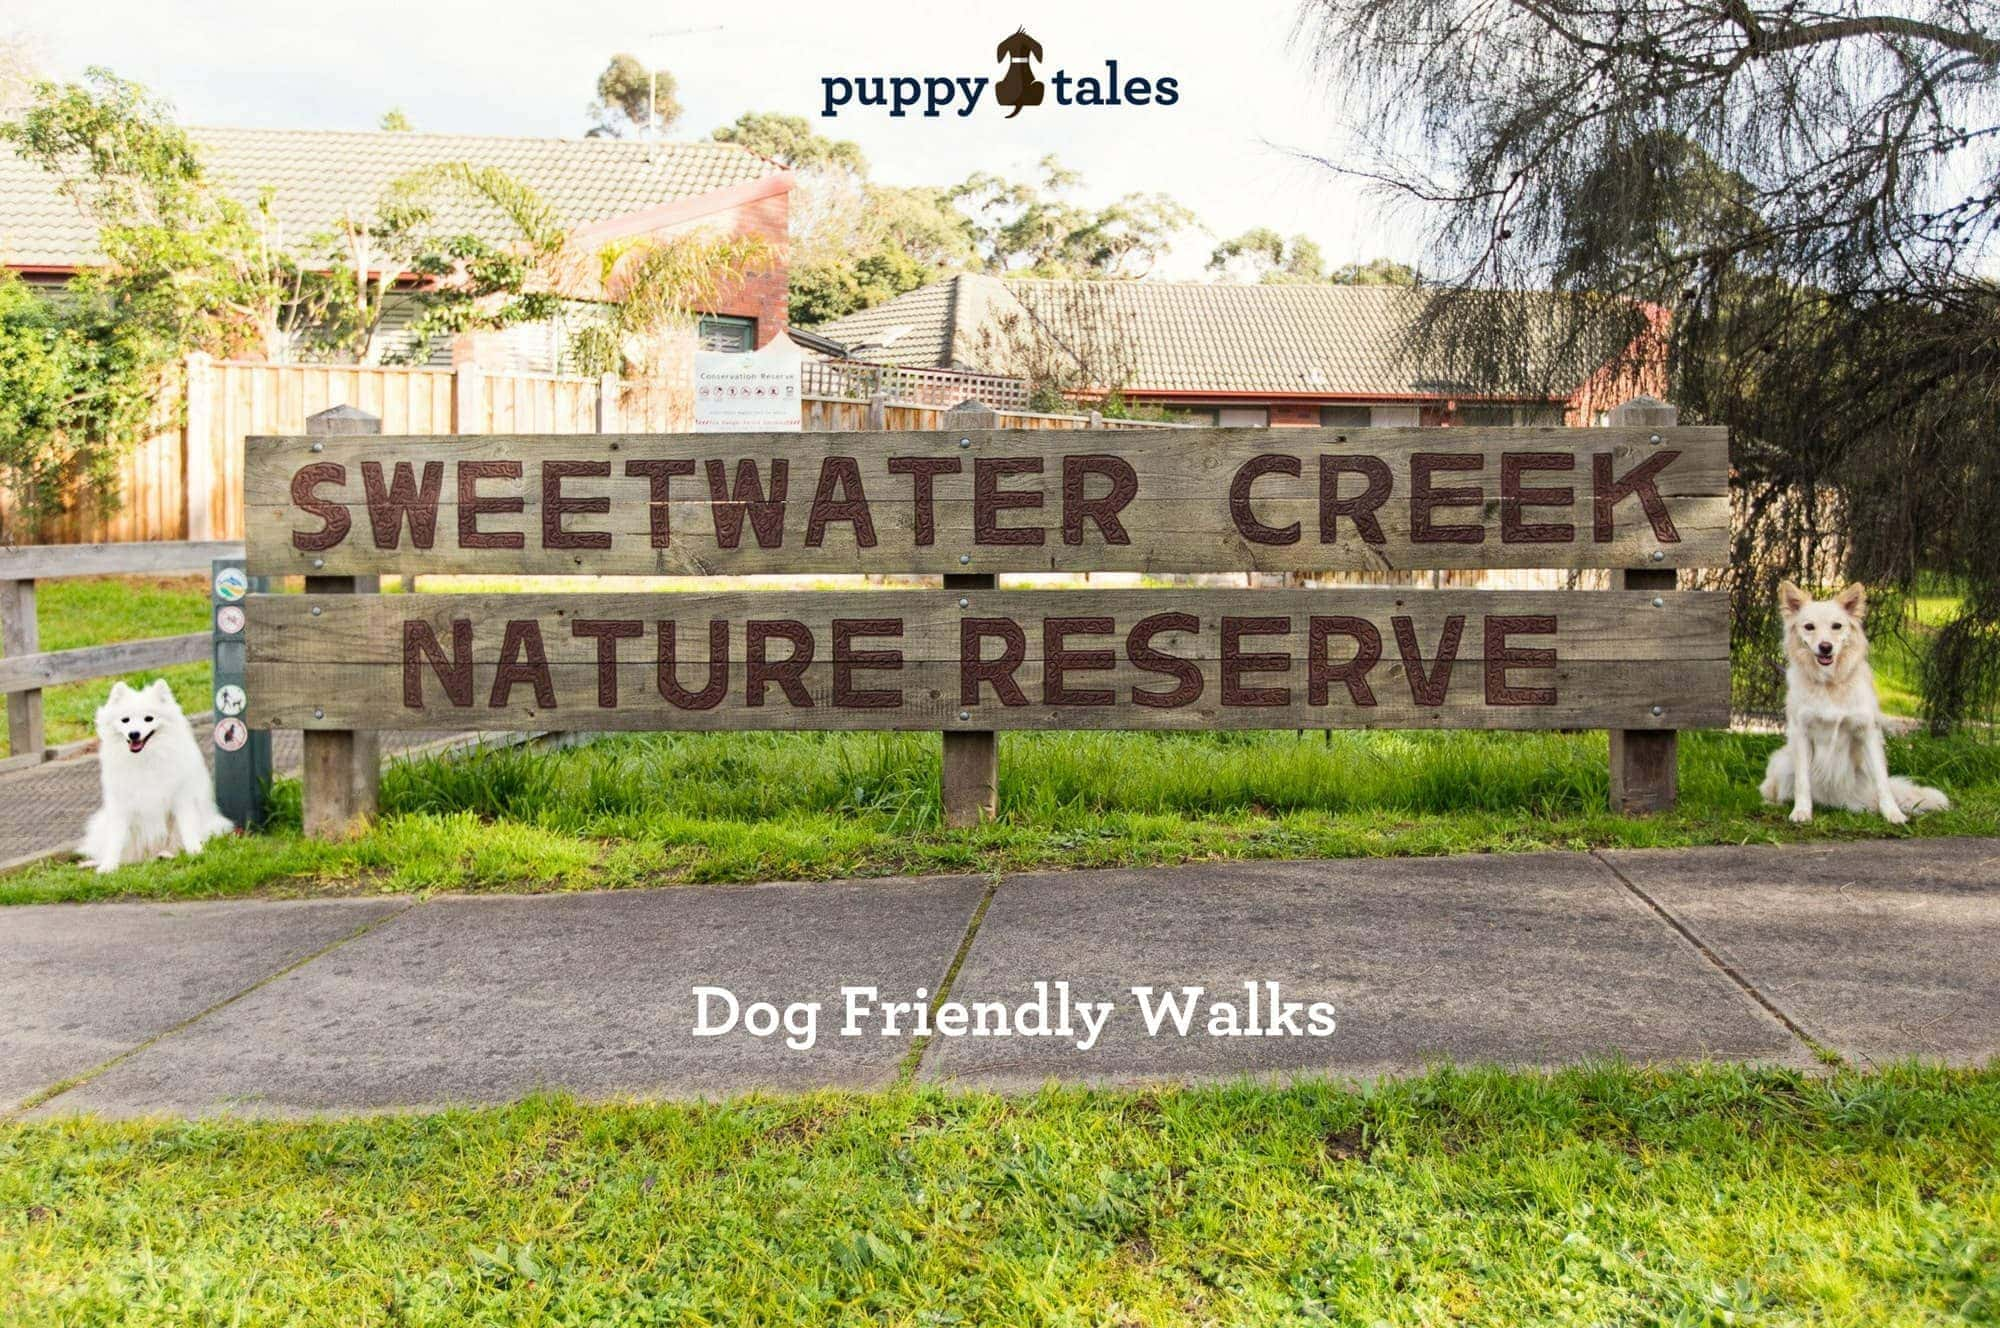 Sweetwater Creek Nature Reserve ~ Dog Friendly Walks | Puppy